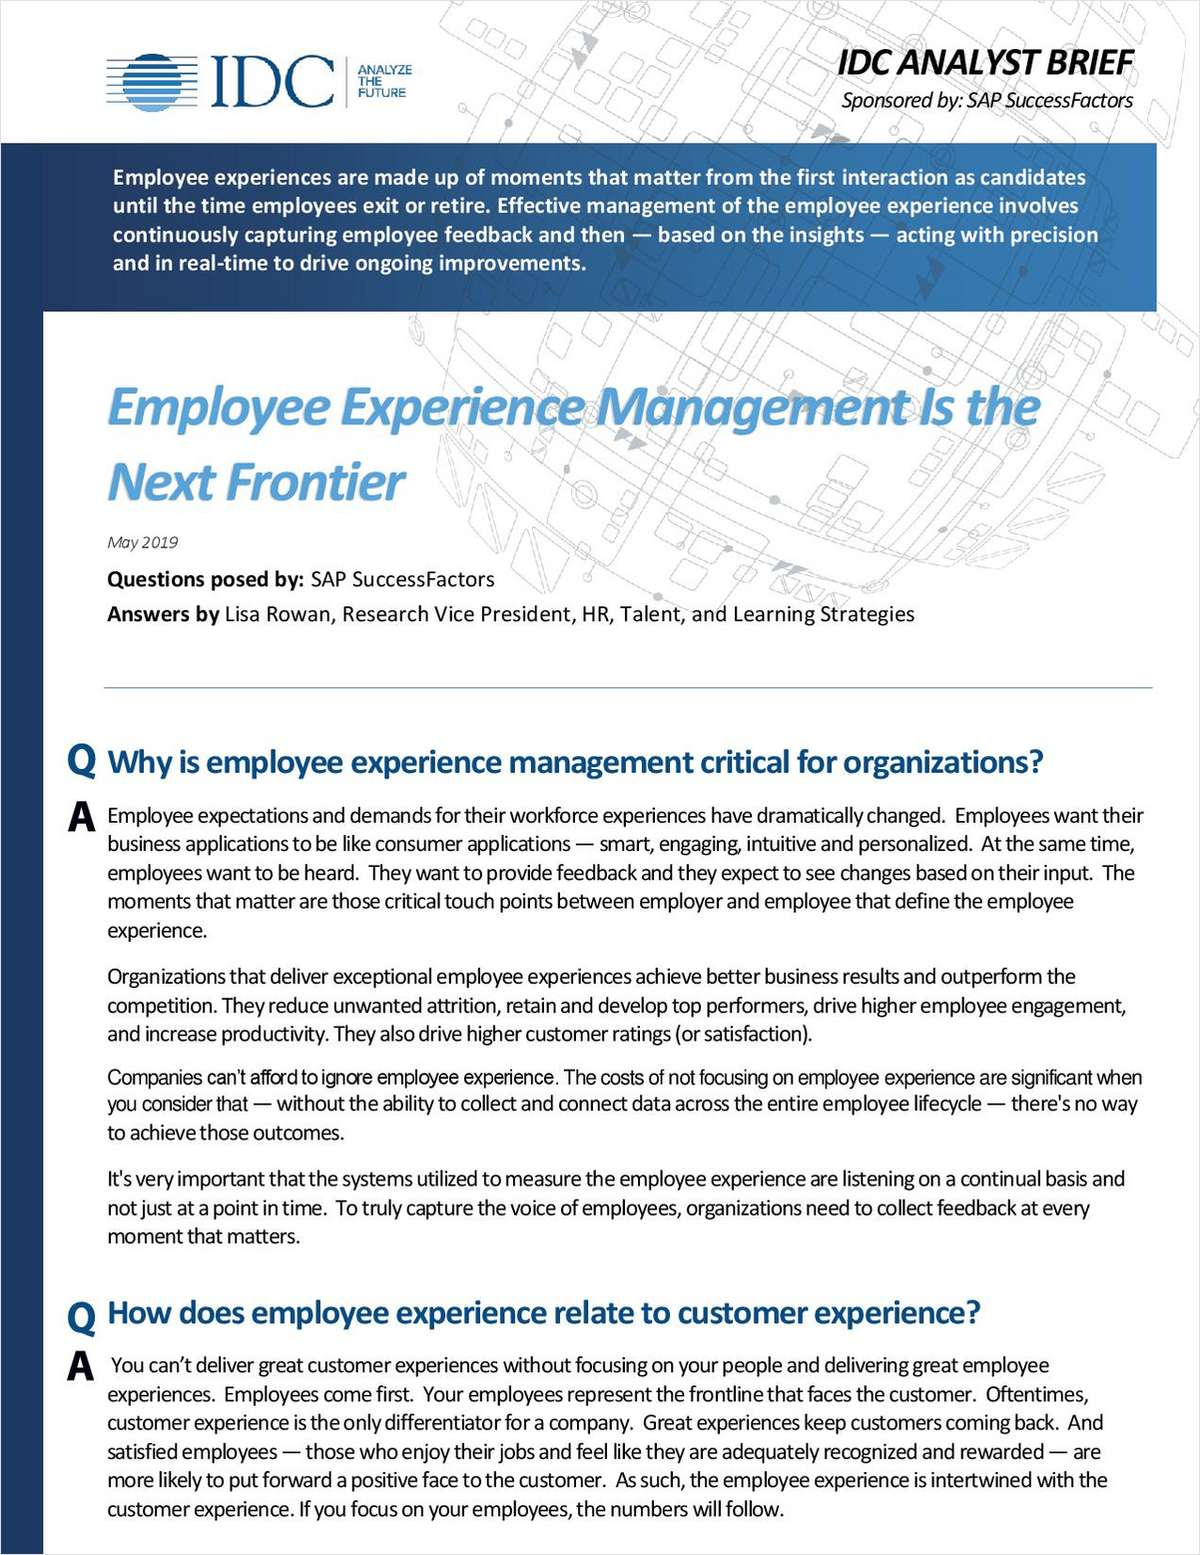 IDC Brief: Employee Experience Management Is The Next Frontier